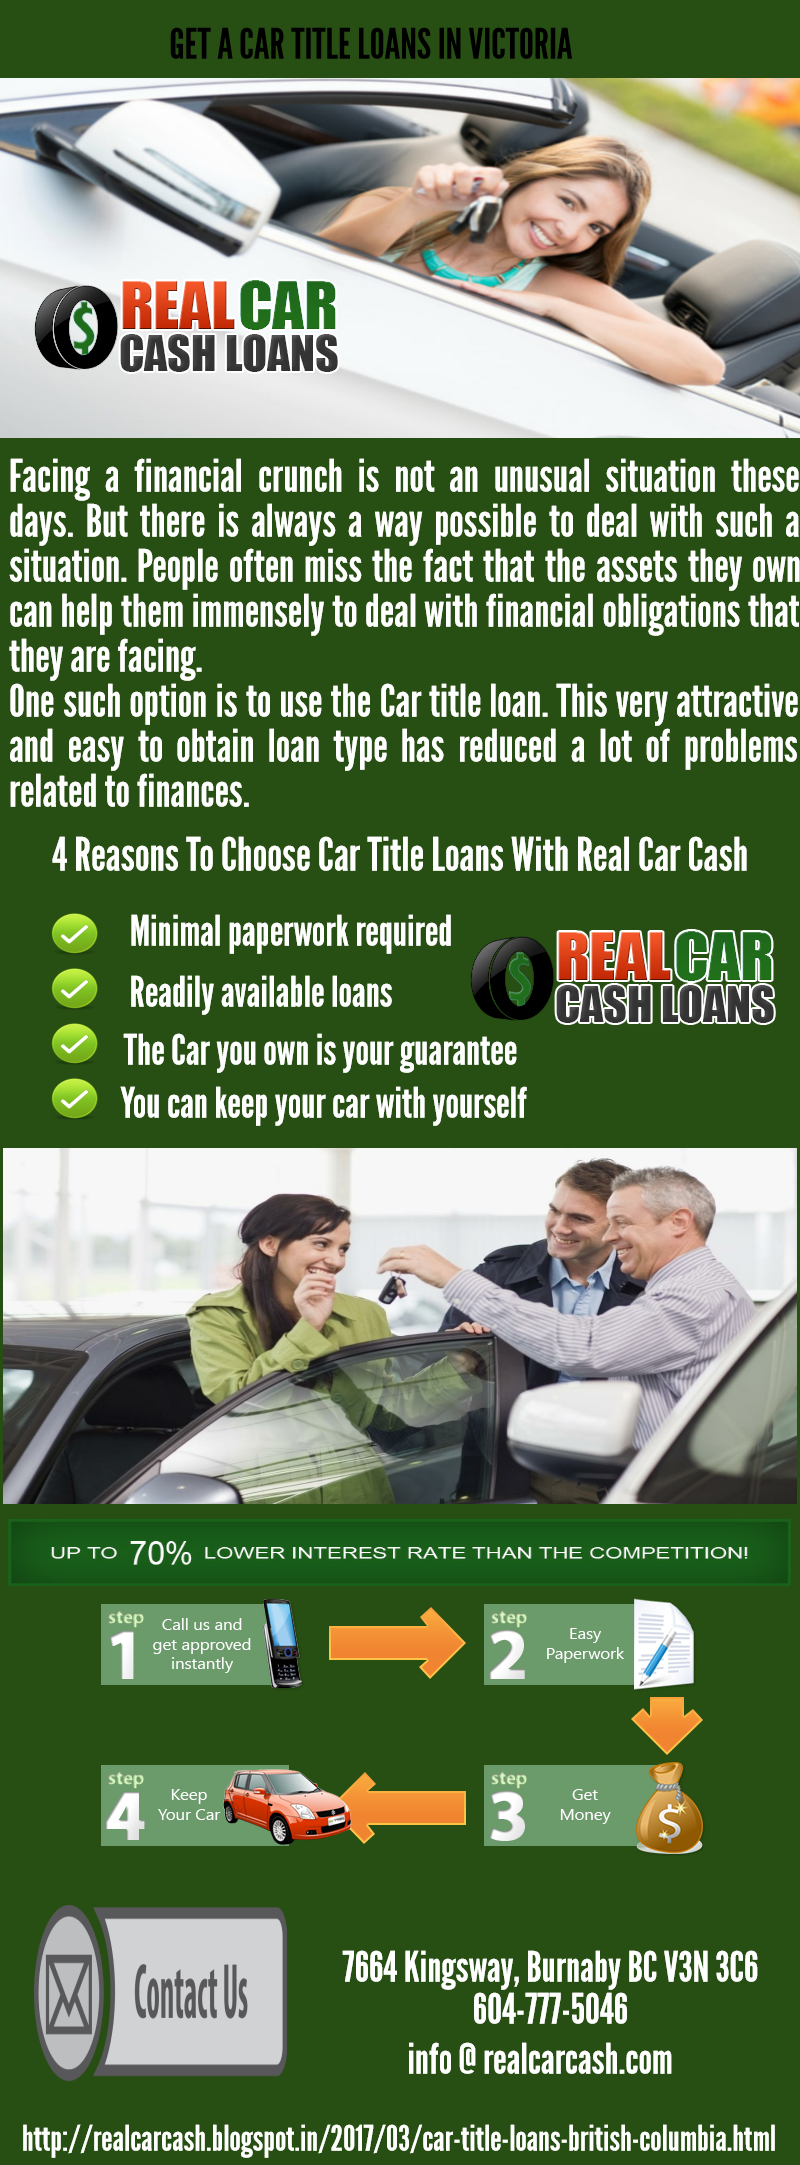 Payday loan near me open now image 3